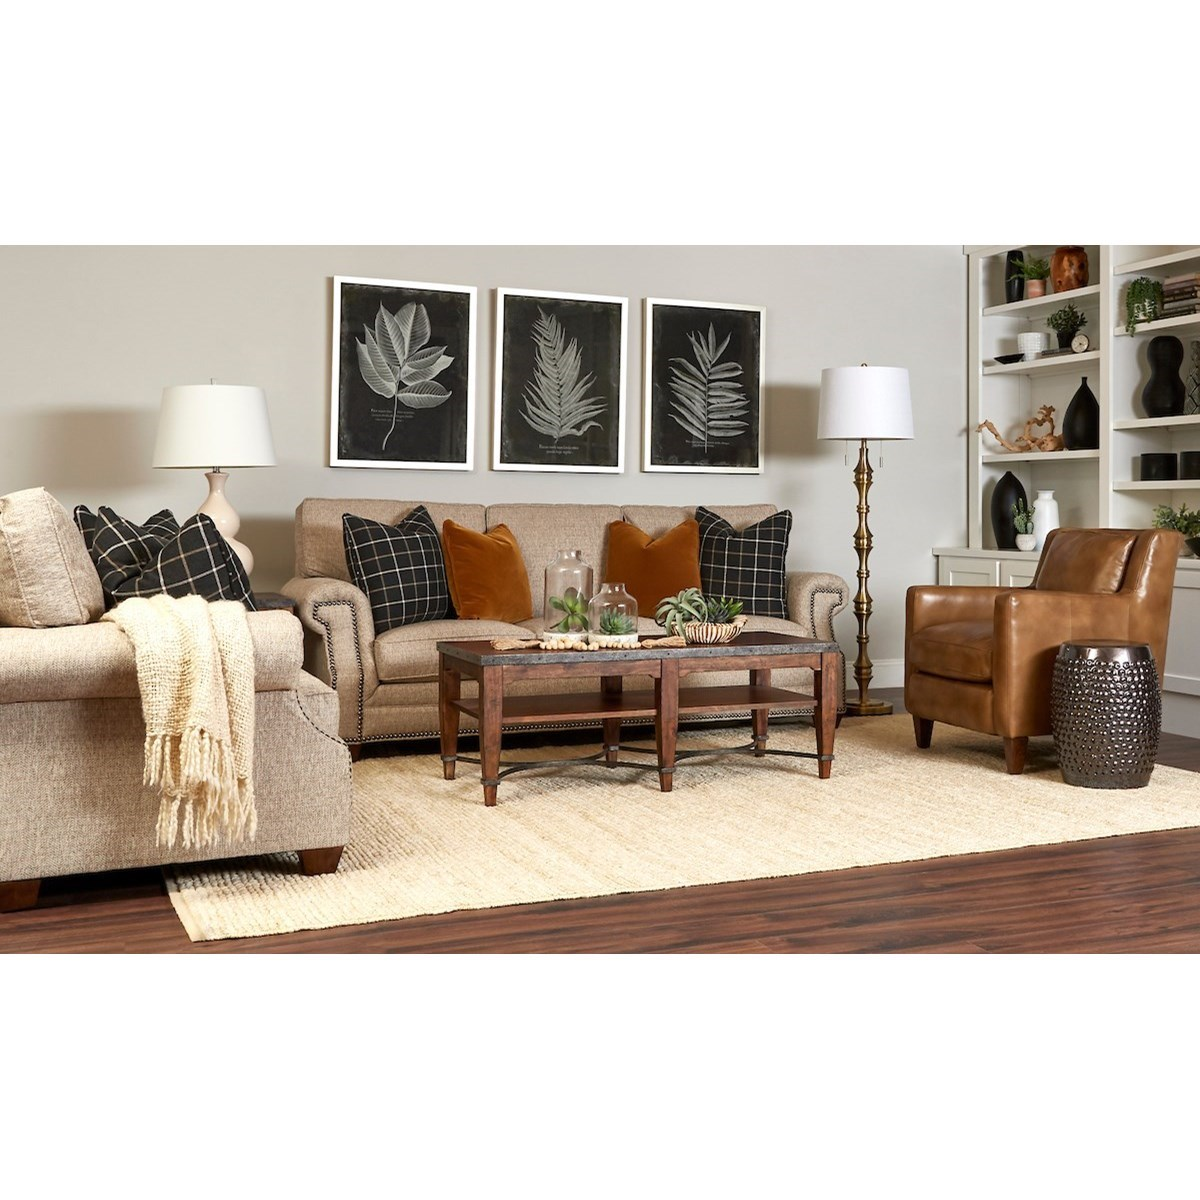 Lawrence Living Room Group by Klaussner at Northeast Factory Direct